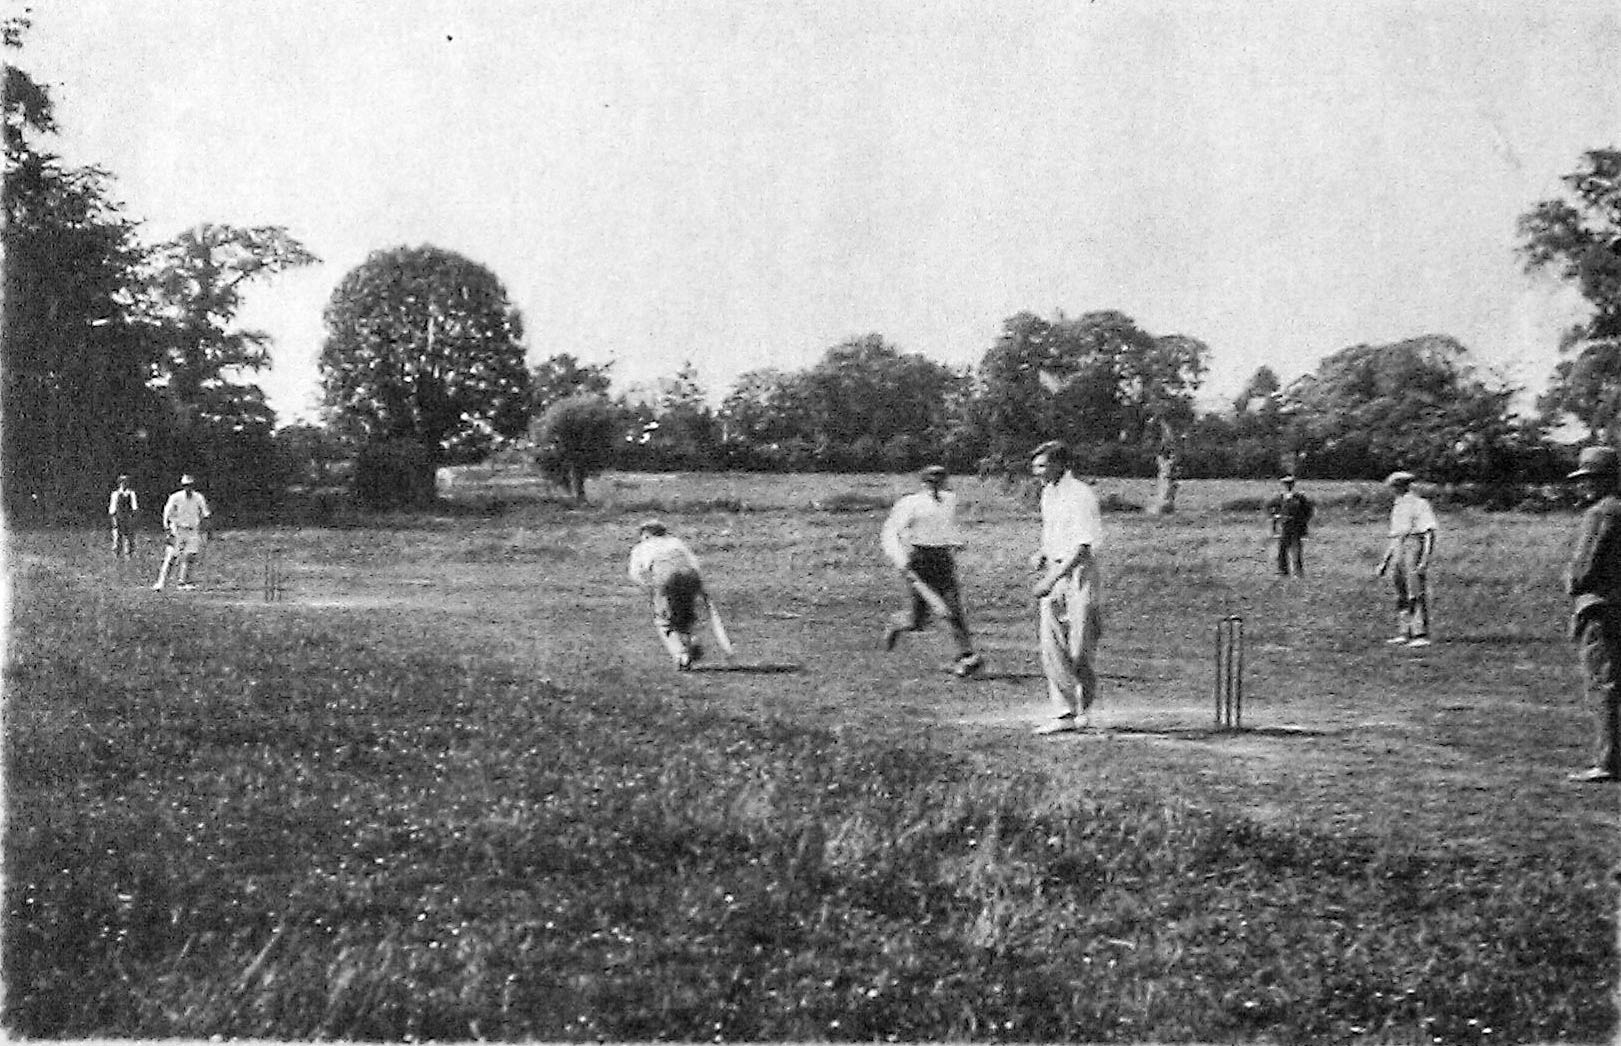 Whaddon cricket archive 2